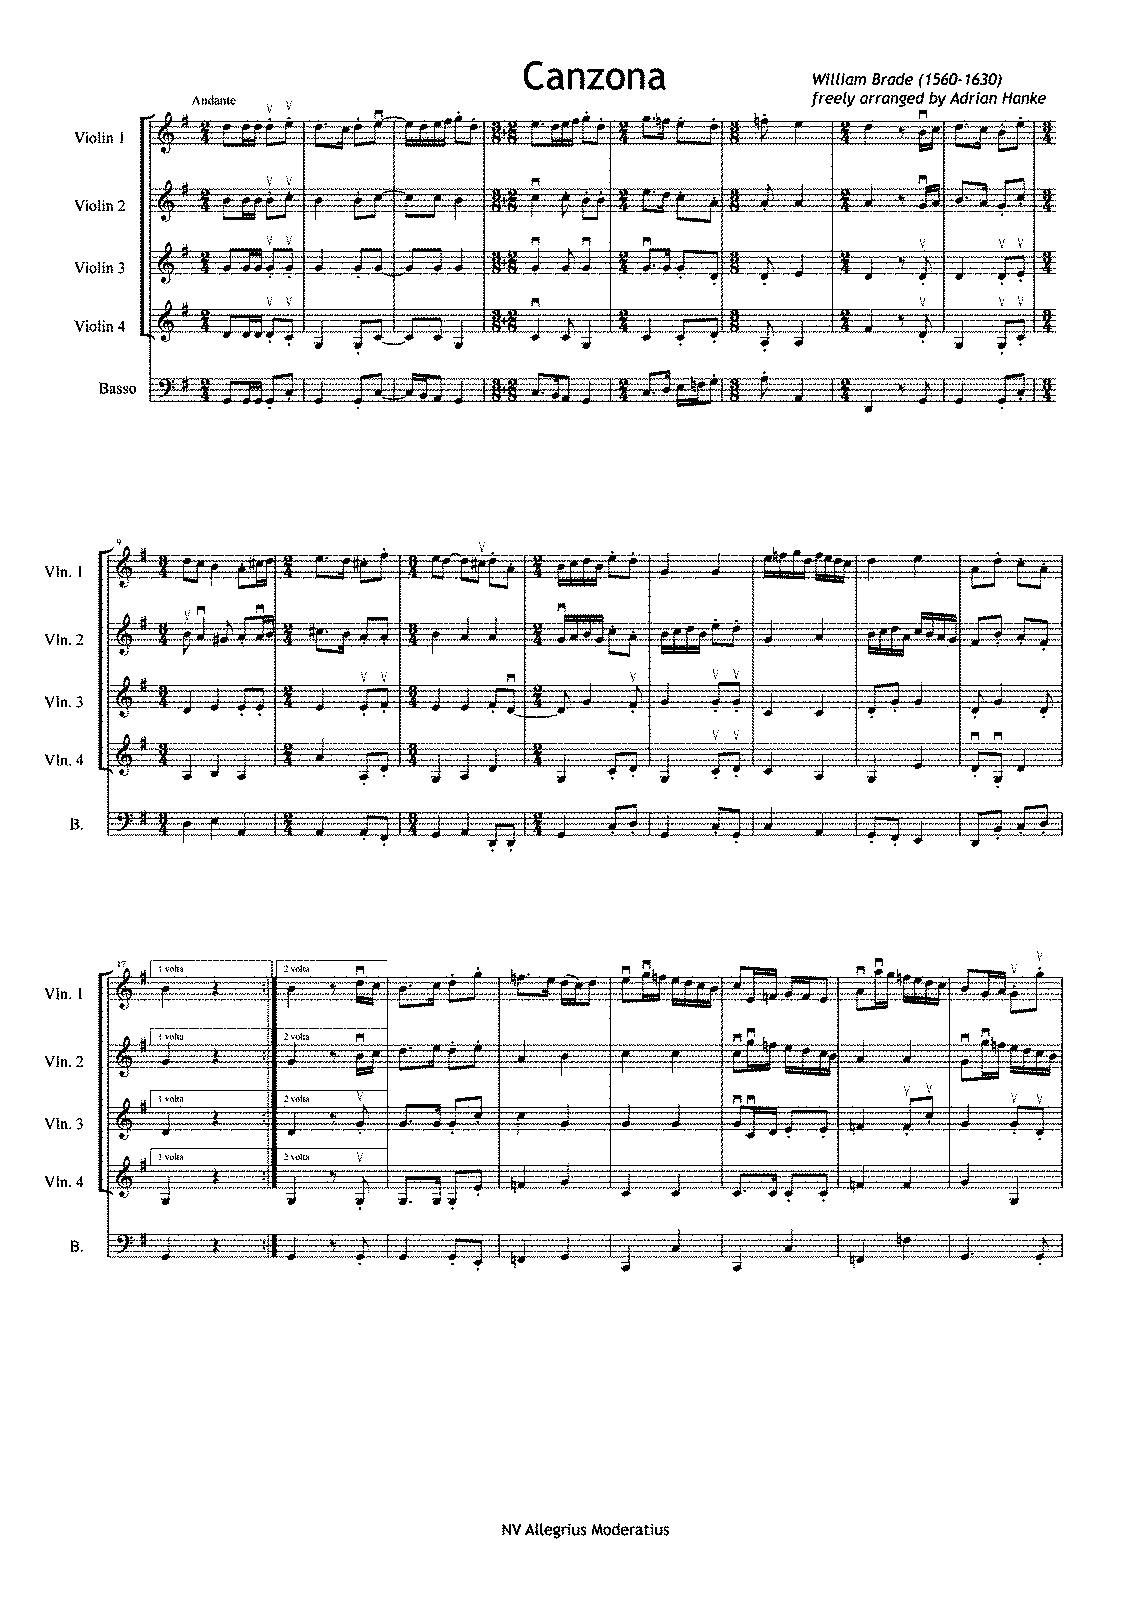 PMLP431836-Brade William - Canzona -5 - Score.pdf